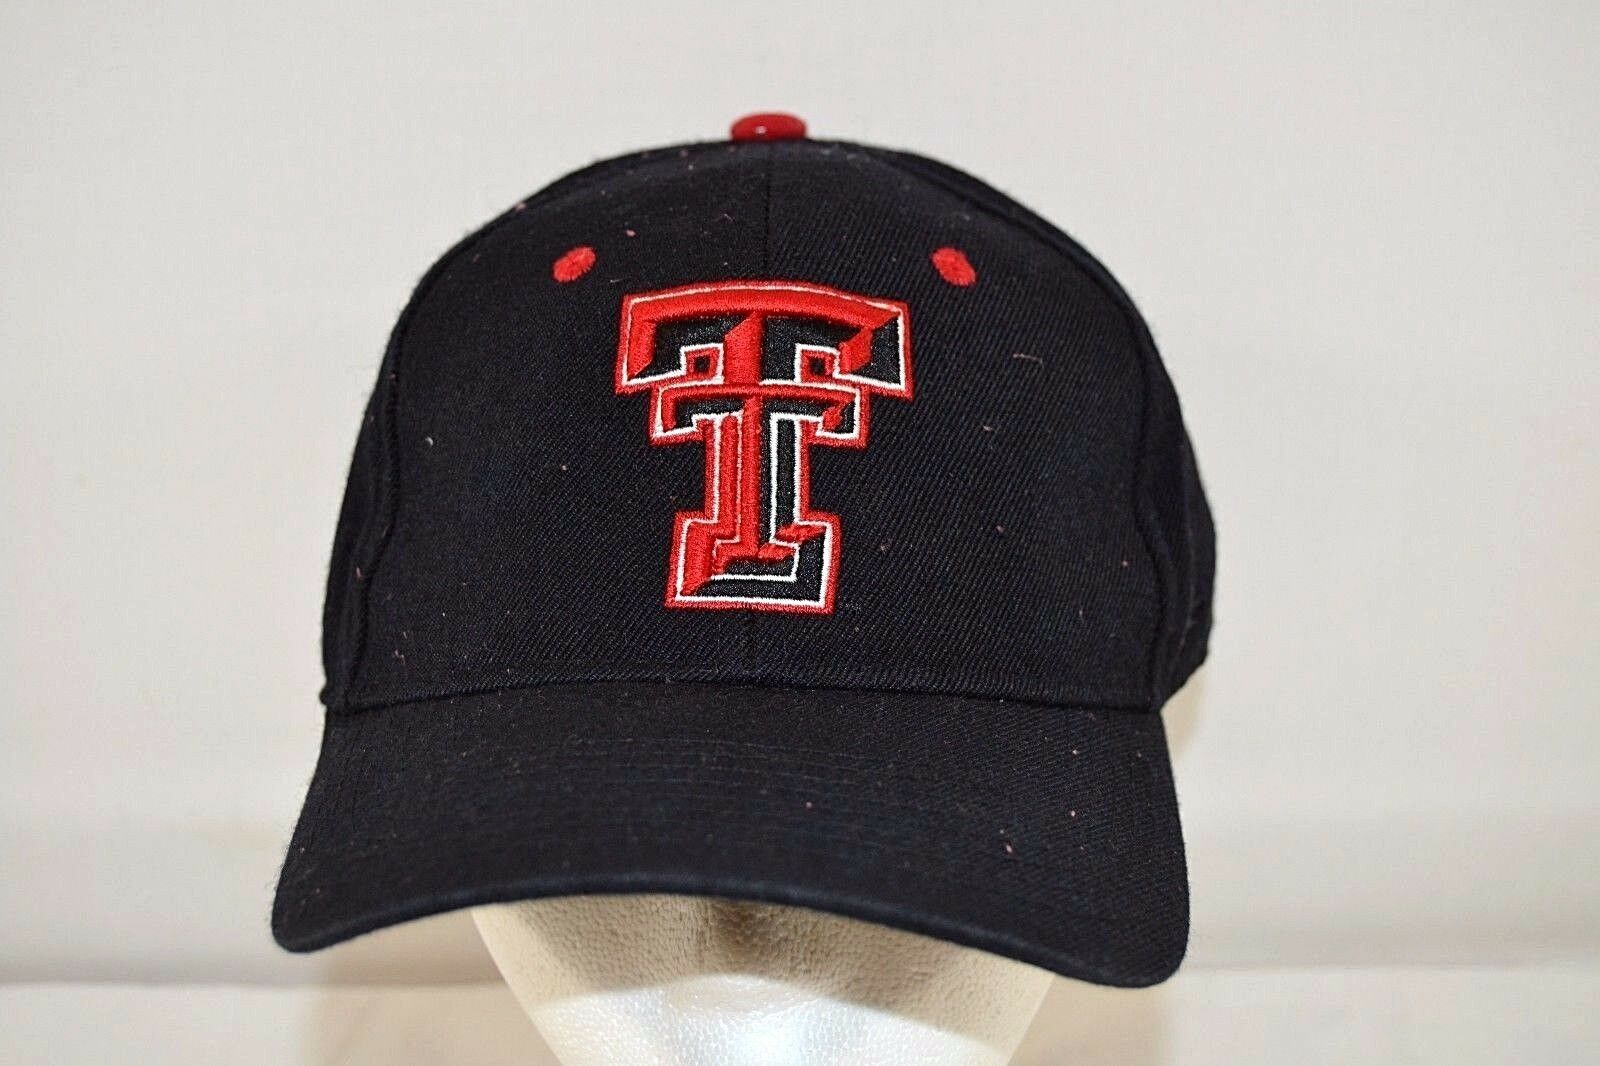 Texas Tech Black/Red Fitted Baseball Cap Fitted Black/Red 7 1/4 9fd00d